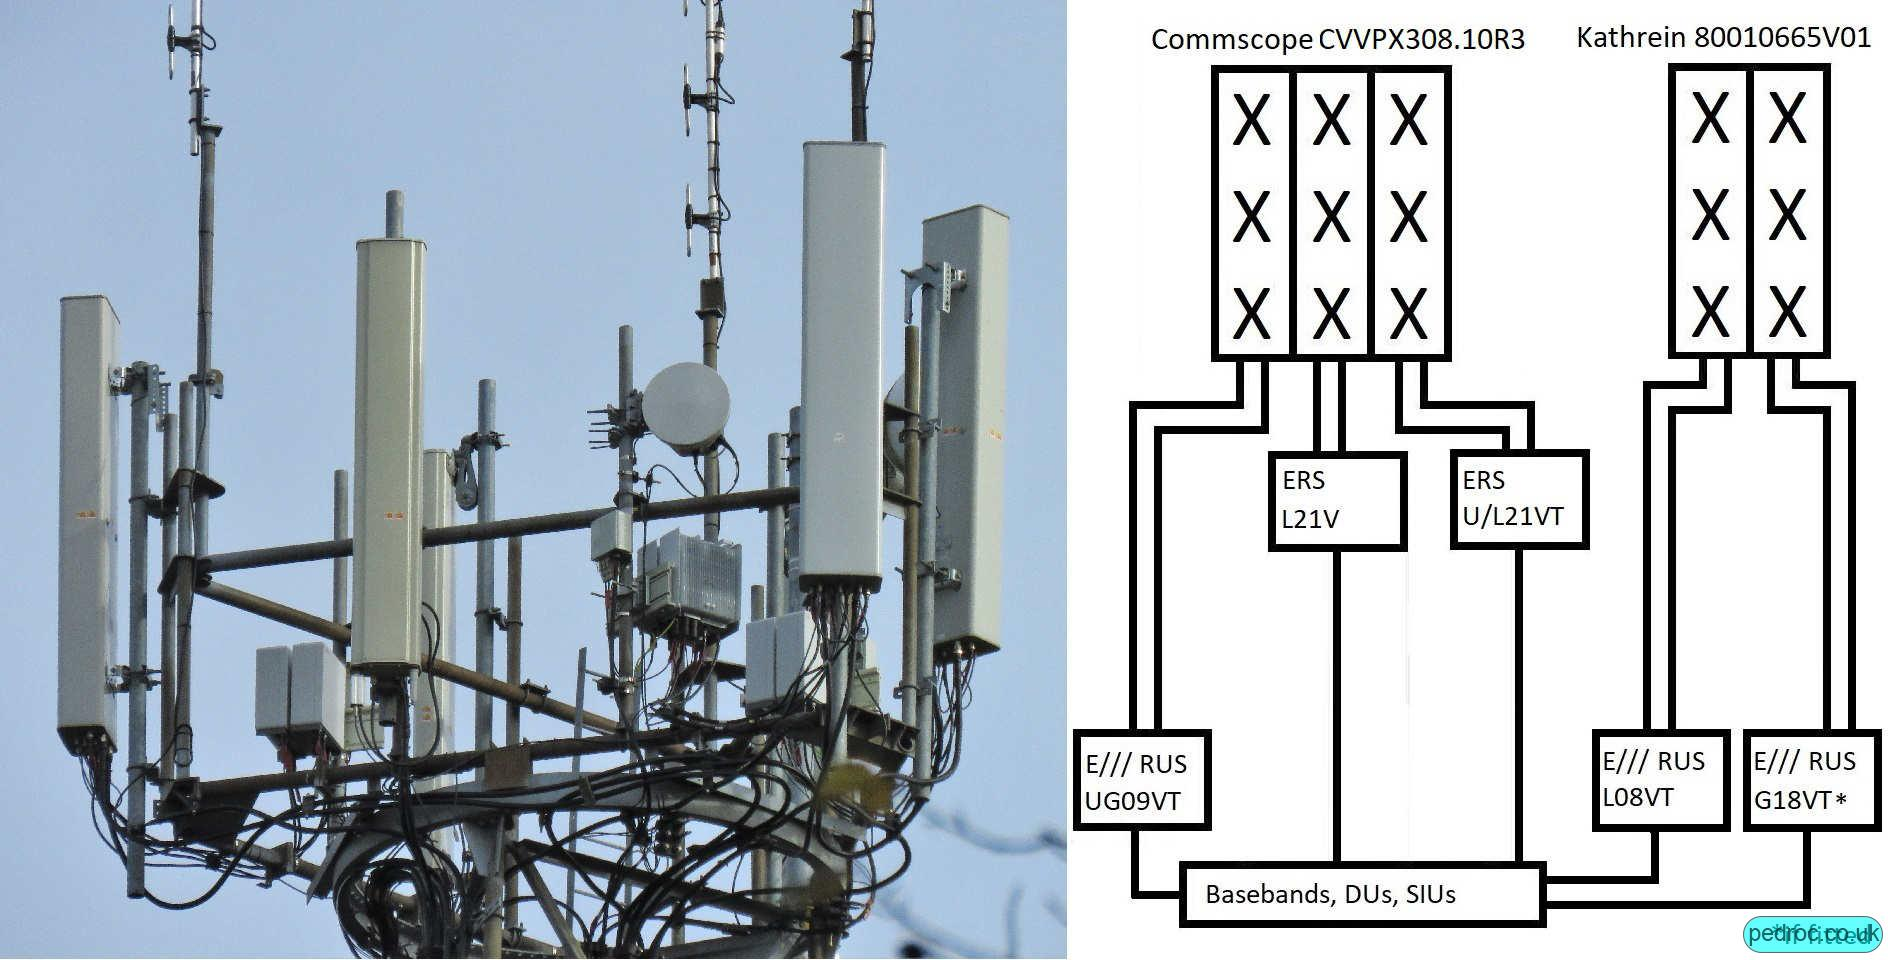 High Capacity Configuration using Commscope CVVPX308.10R3 and Kathrein 80010665V01. Dual ERS per sector for 4T4R L21.